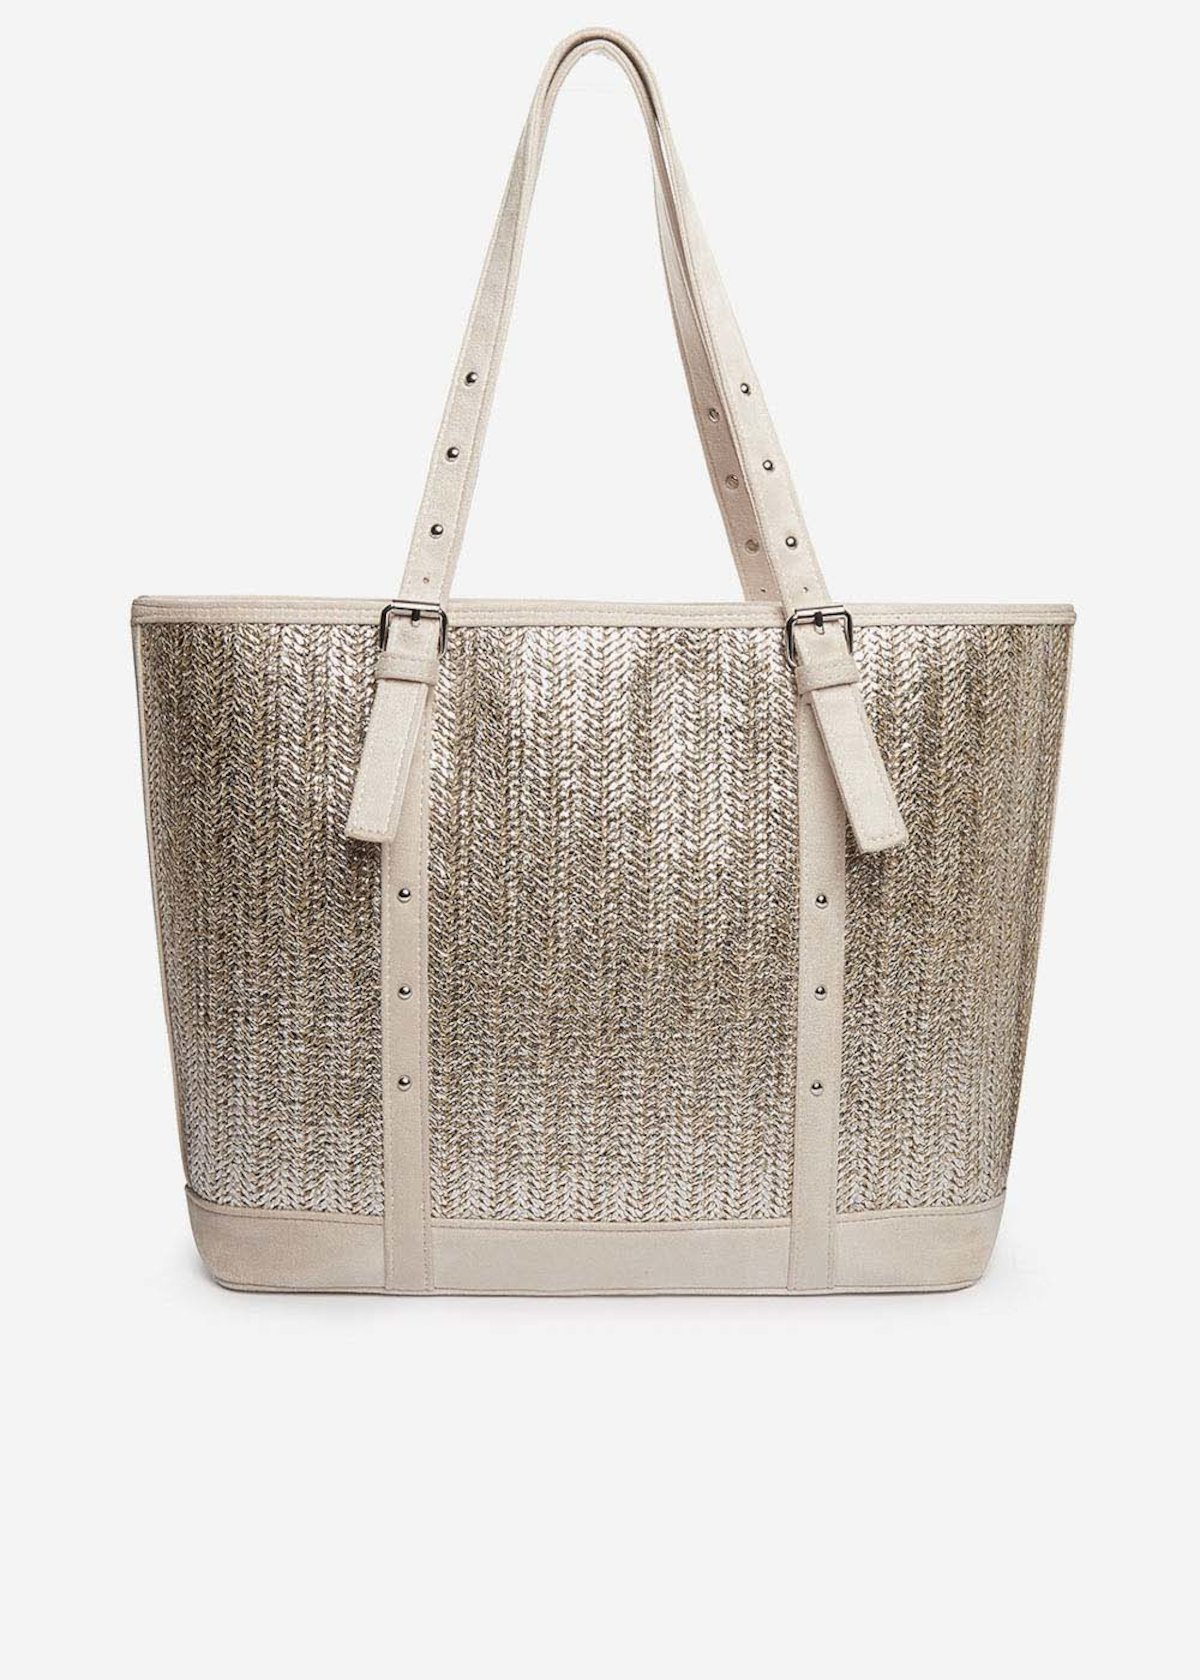 Shopping bag Brilliant in paglia silver - Light Beige